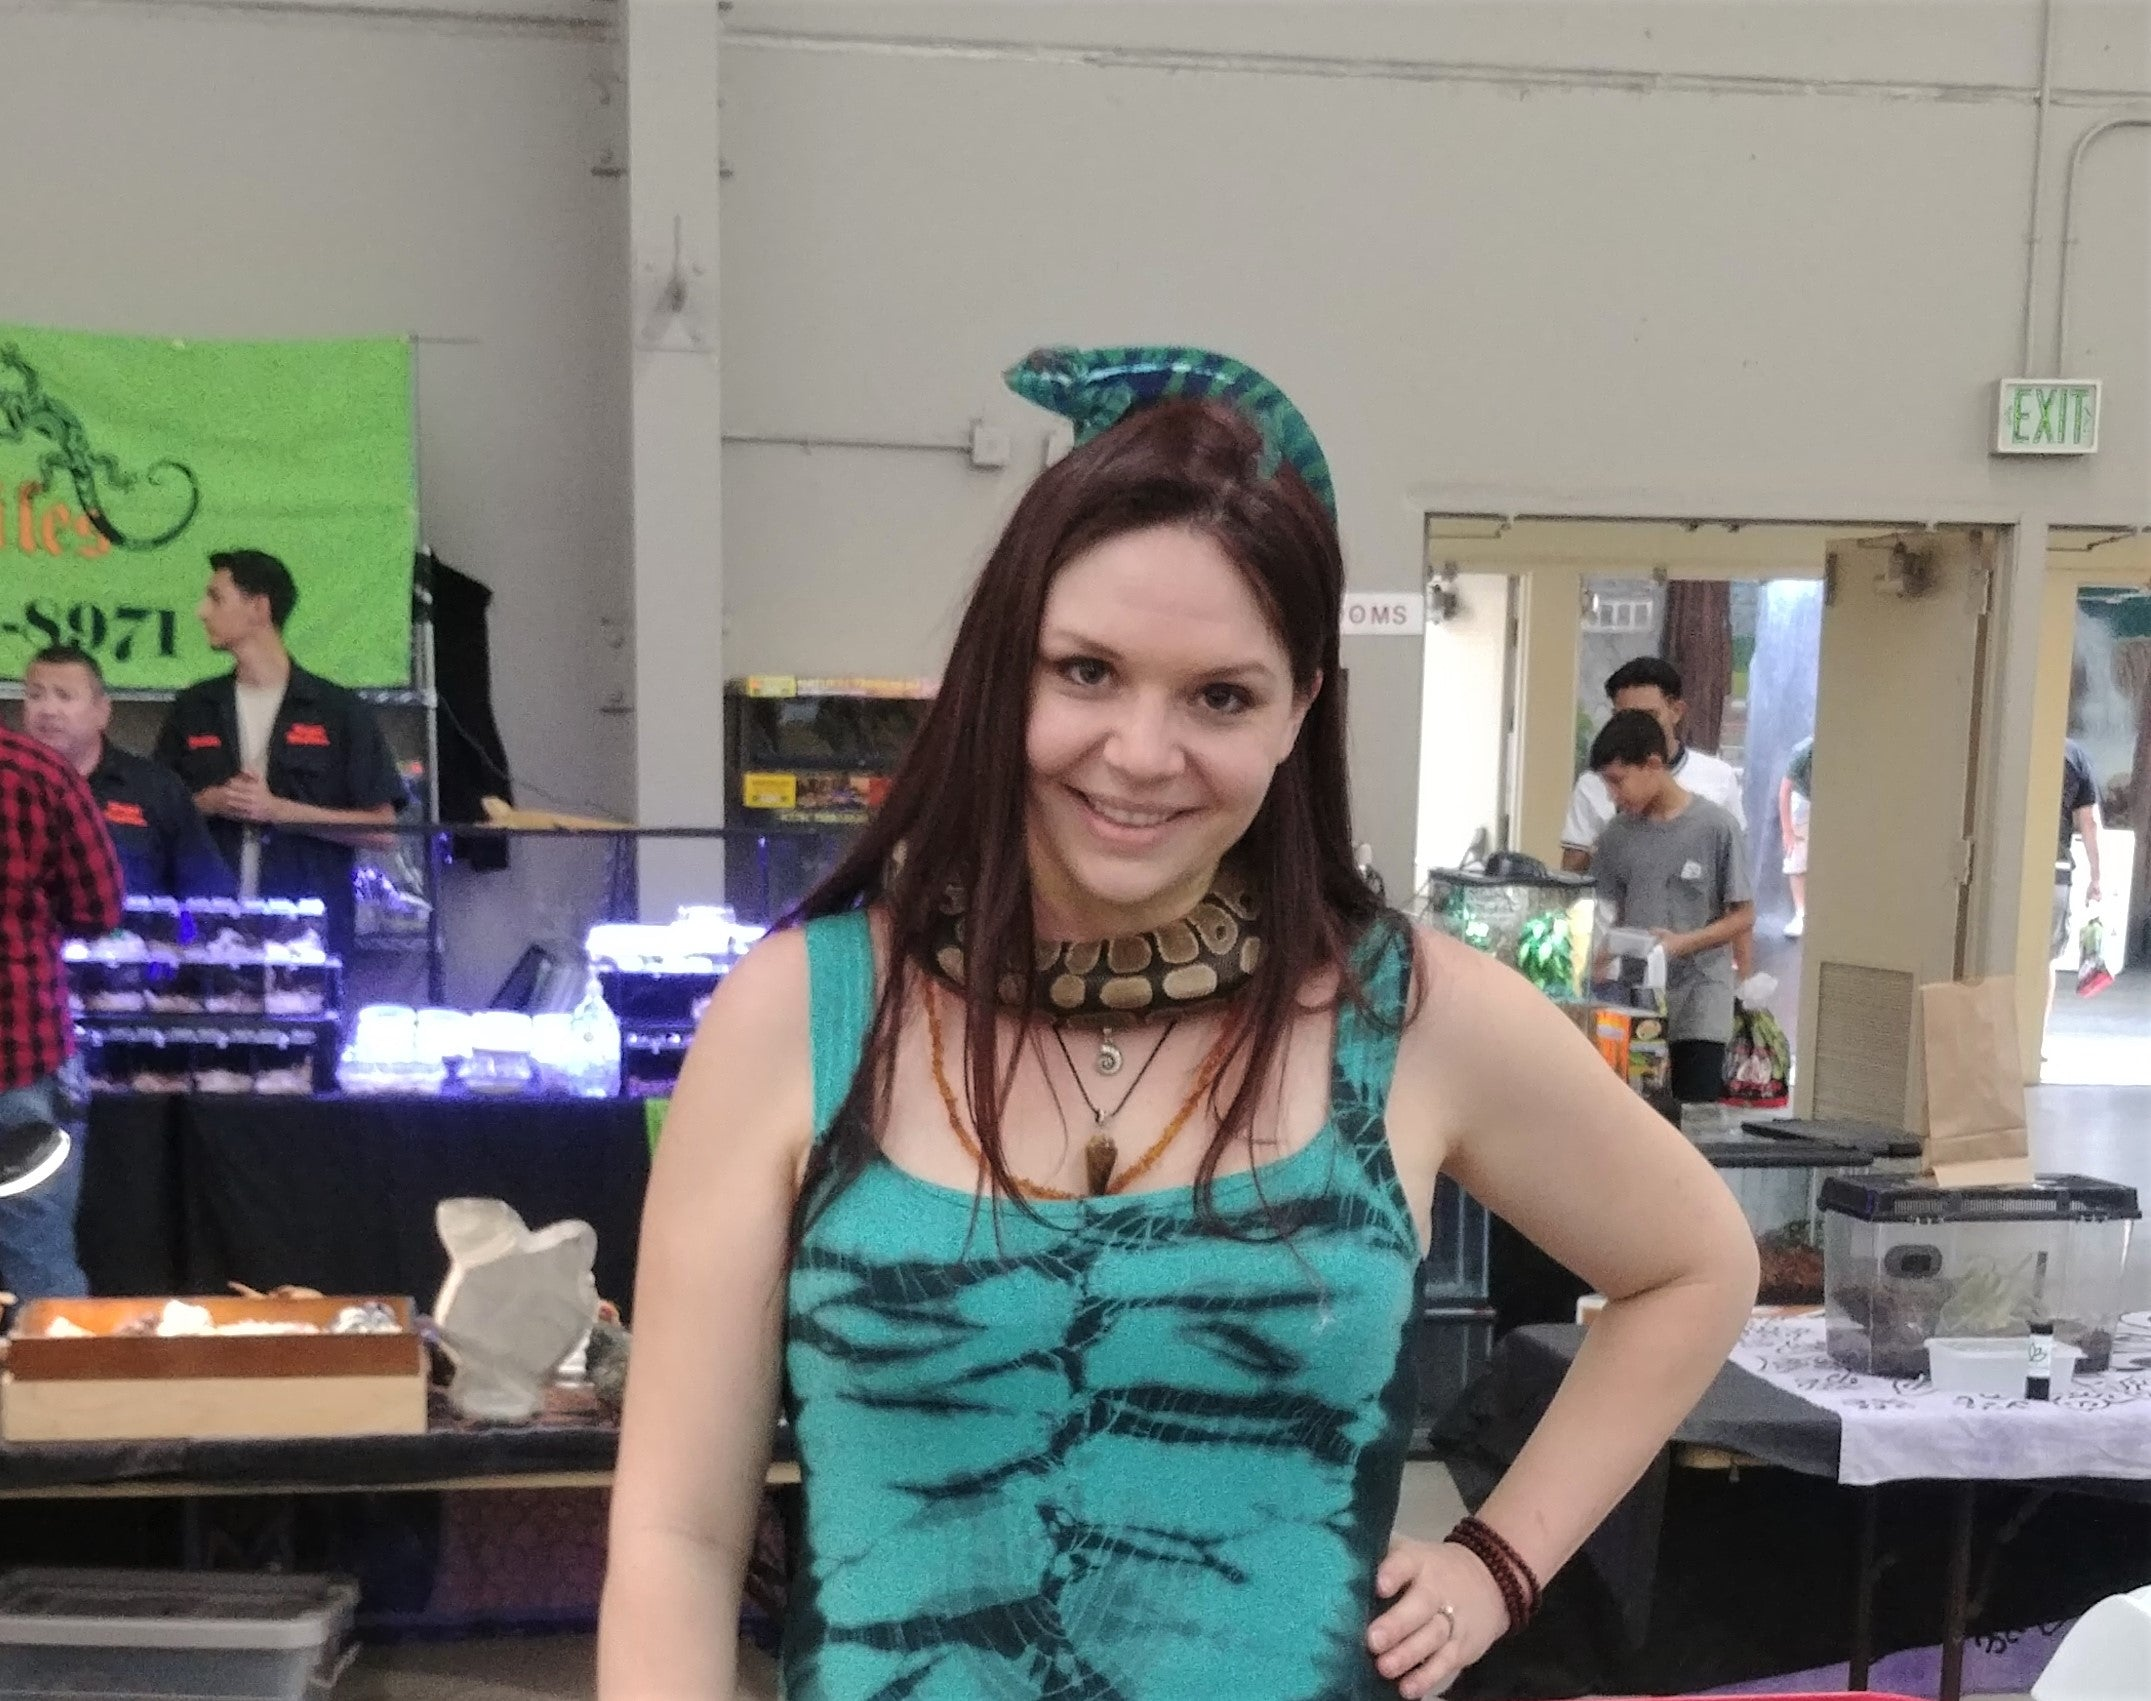 Central Valley Reptile Expo FRESNO Gypsy Gems & Jewelry Gemstone Biologist Brown Chameleon matching Snake Dress